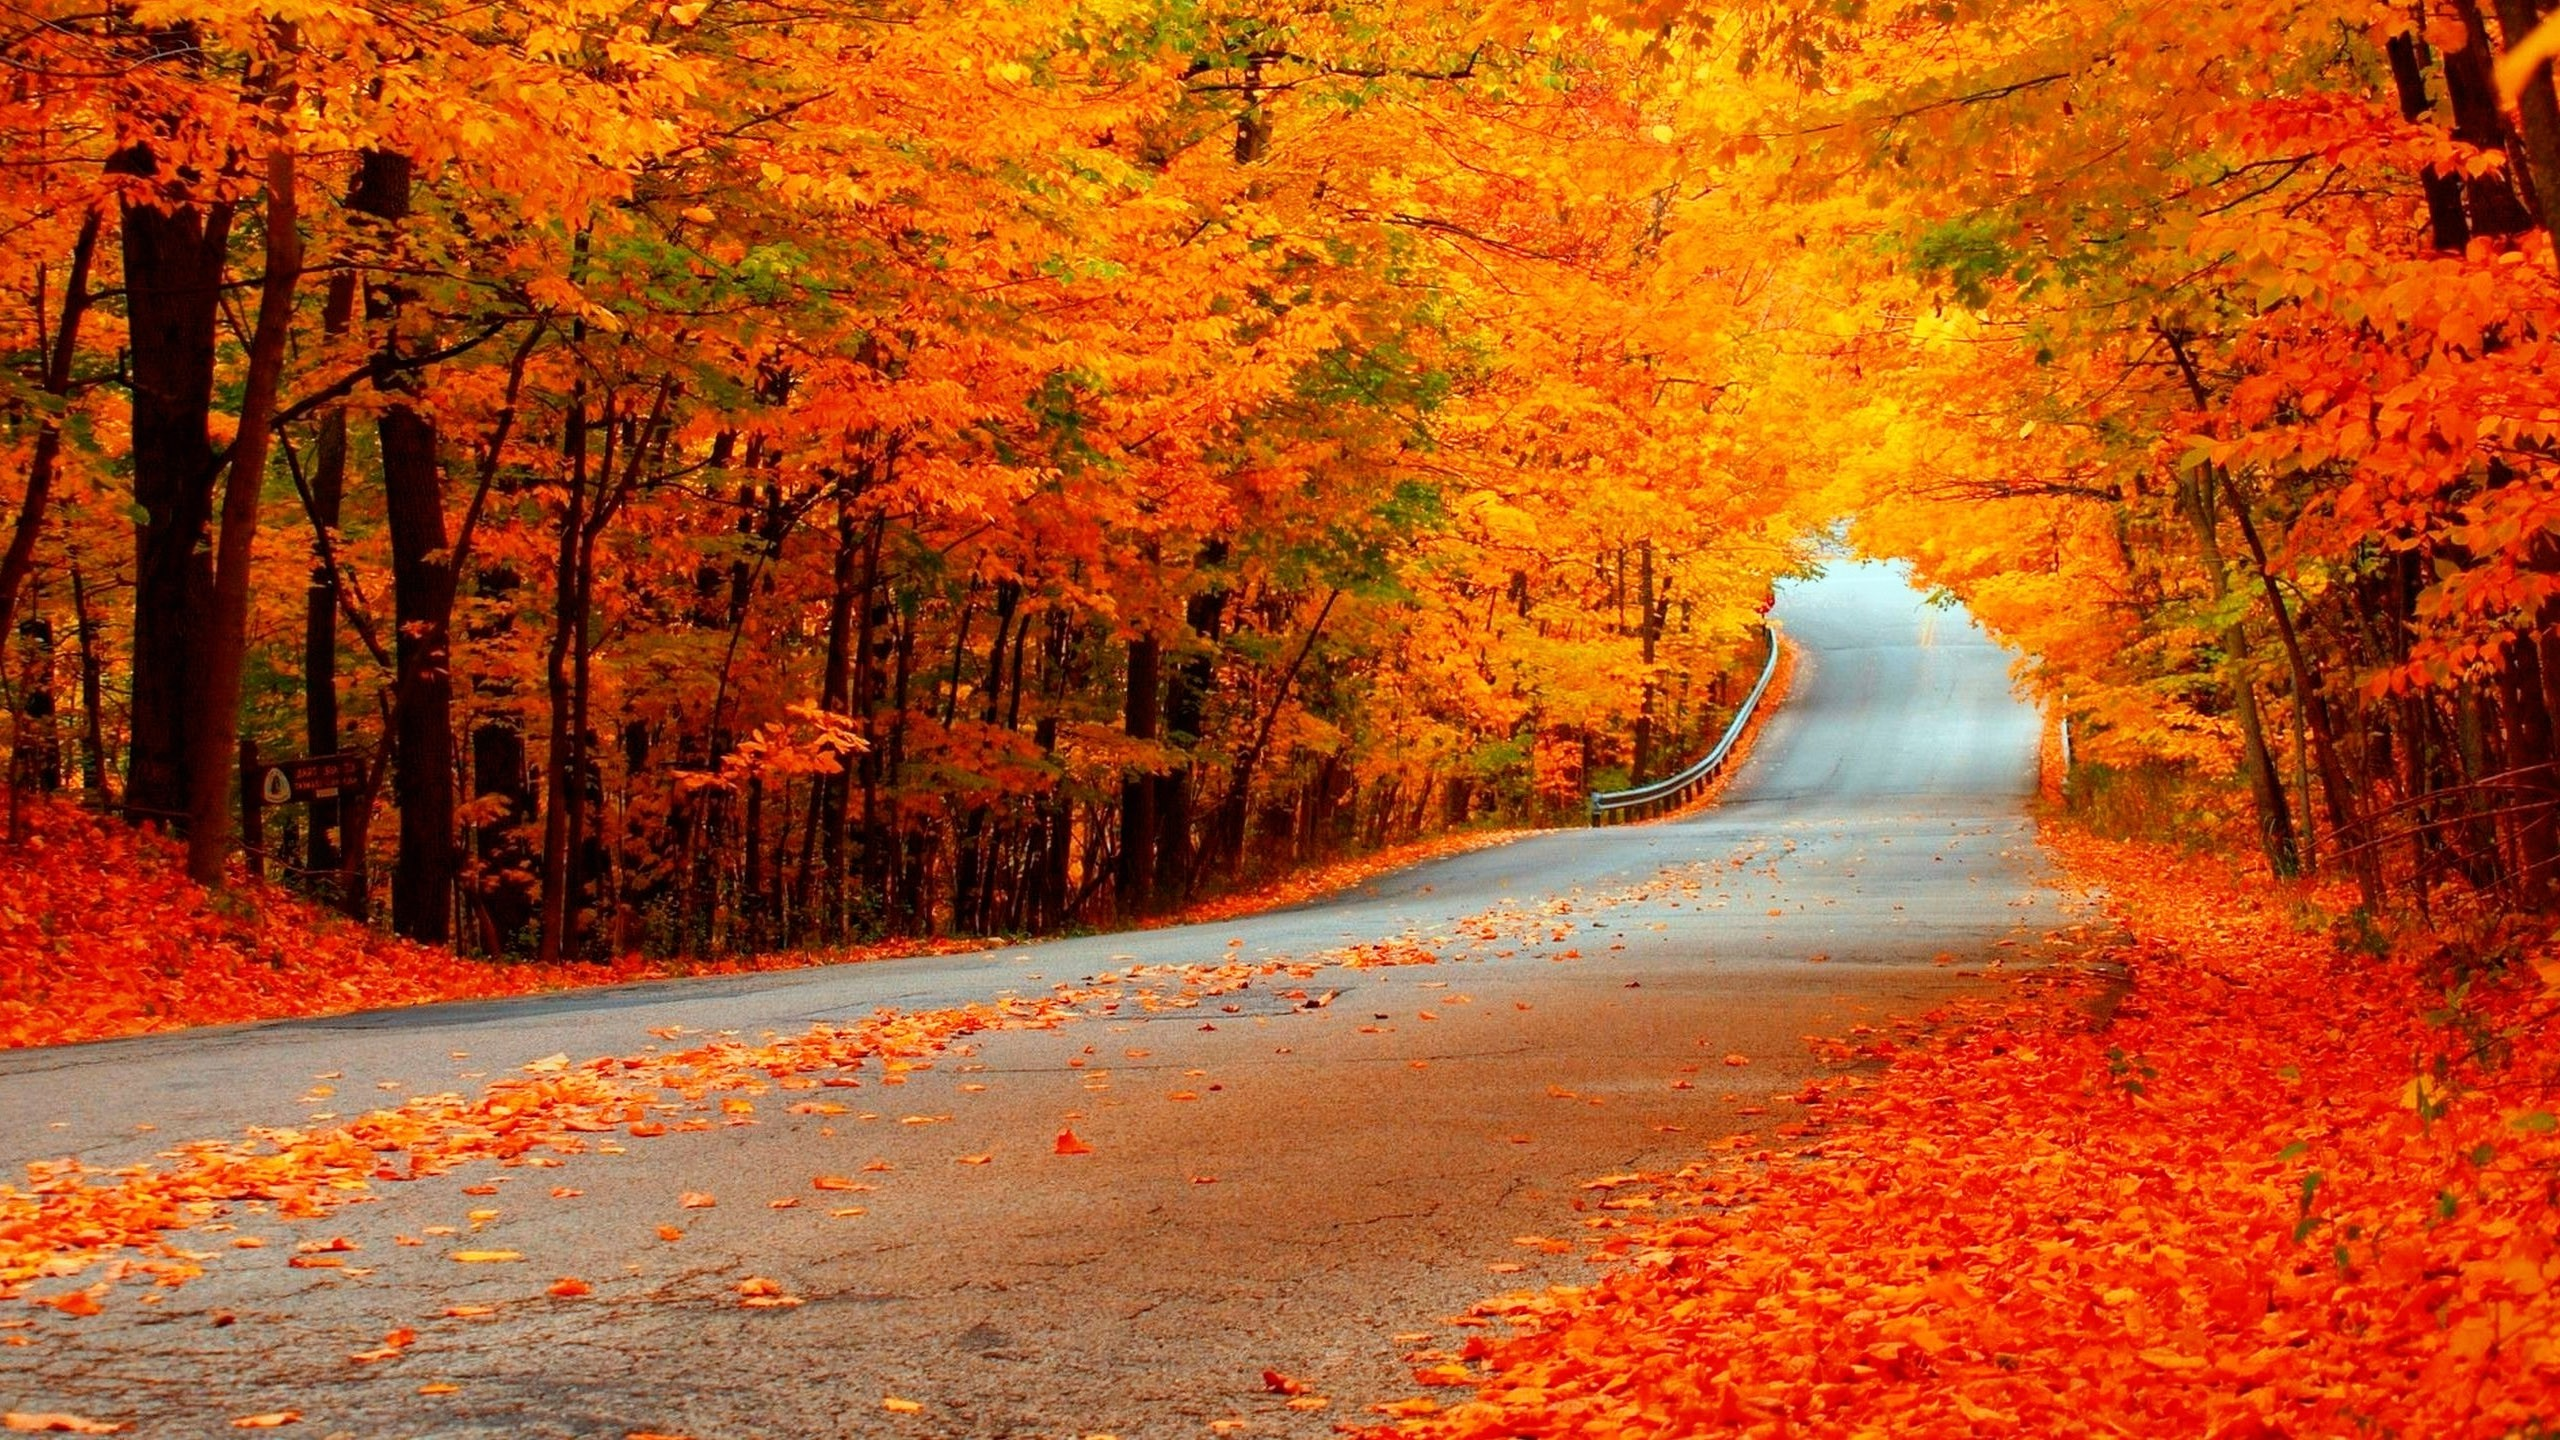 Fall Wallpaper HD Wallpapers Backgrounds of Your Choice #8195